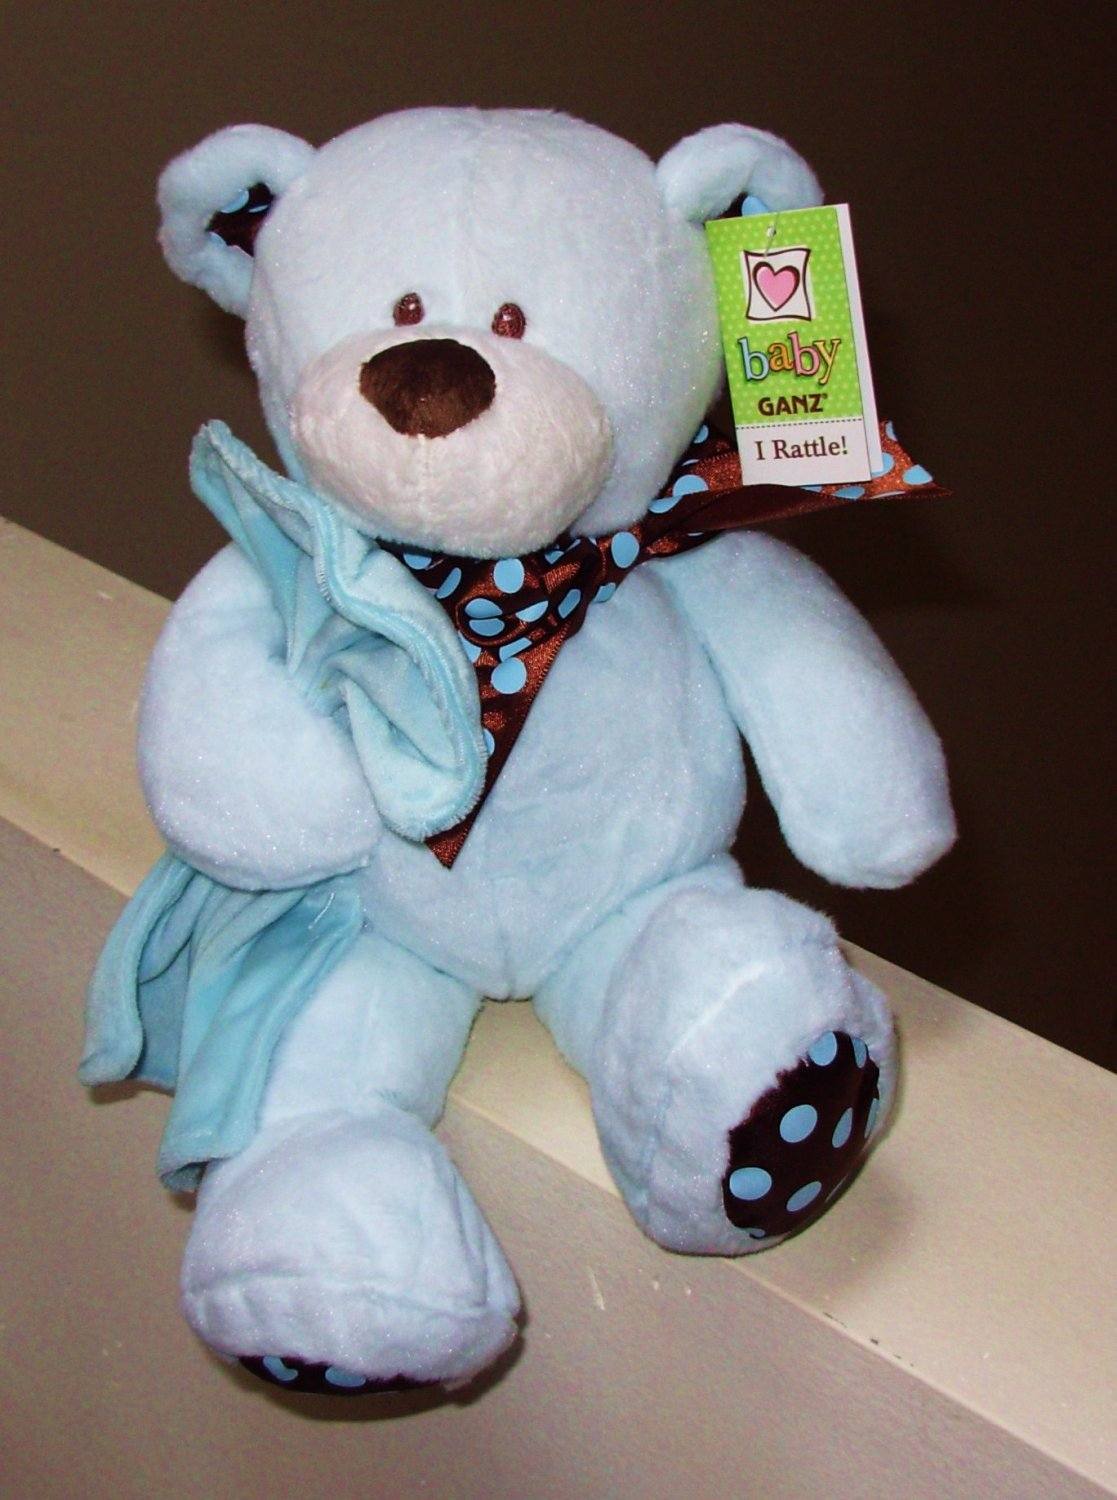 CHOCOLATE DROPS BEAR BABY RATTLE BLUE AND CHOCOLATE MACHINE WASHABLE NEW